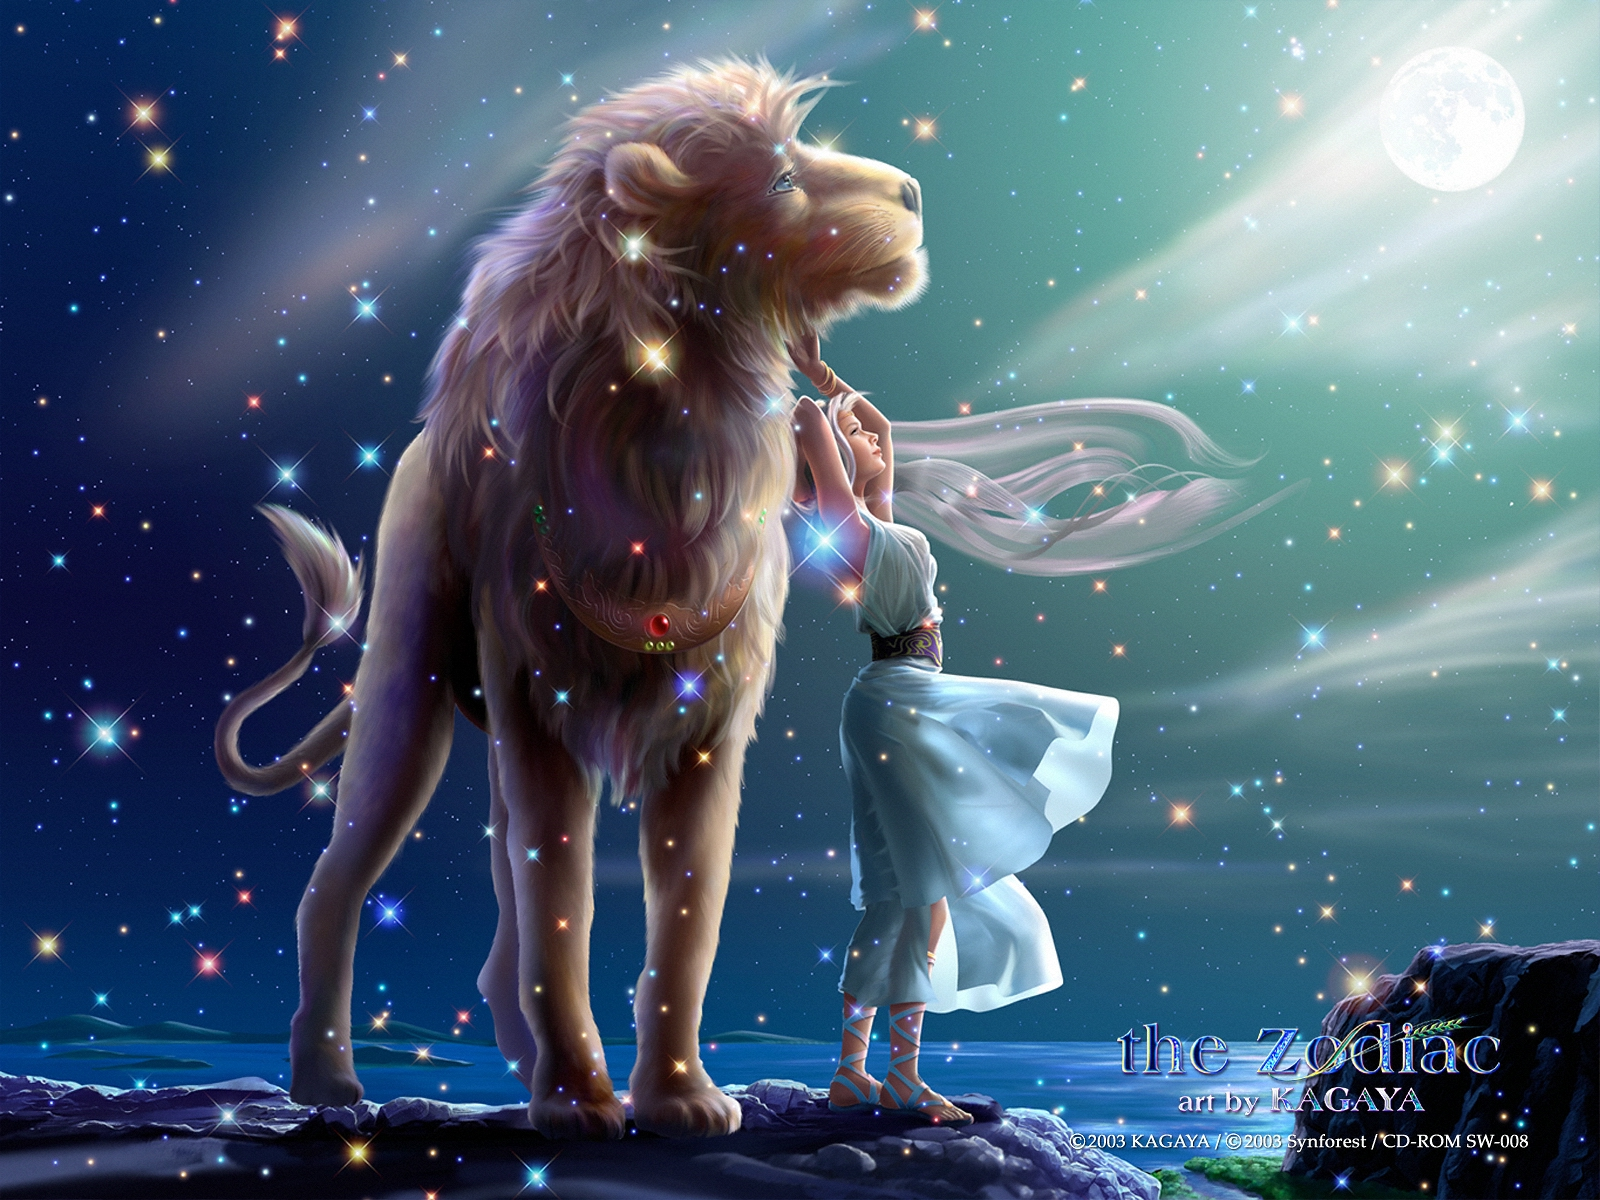 leo sexuality the ideal astrological love match for leo leo is what ...